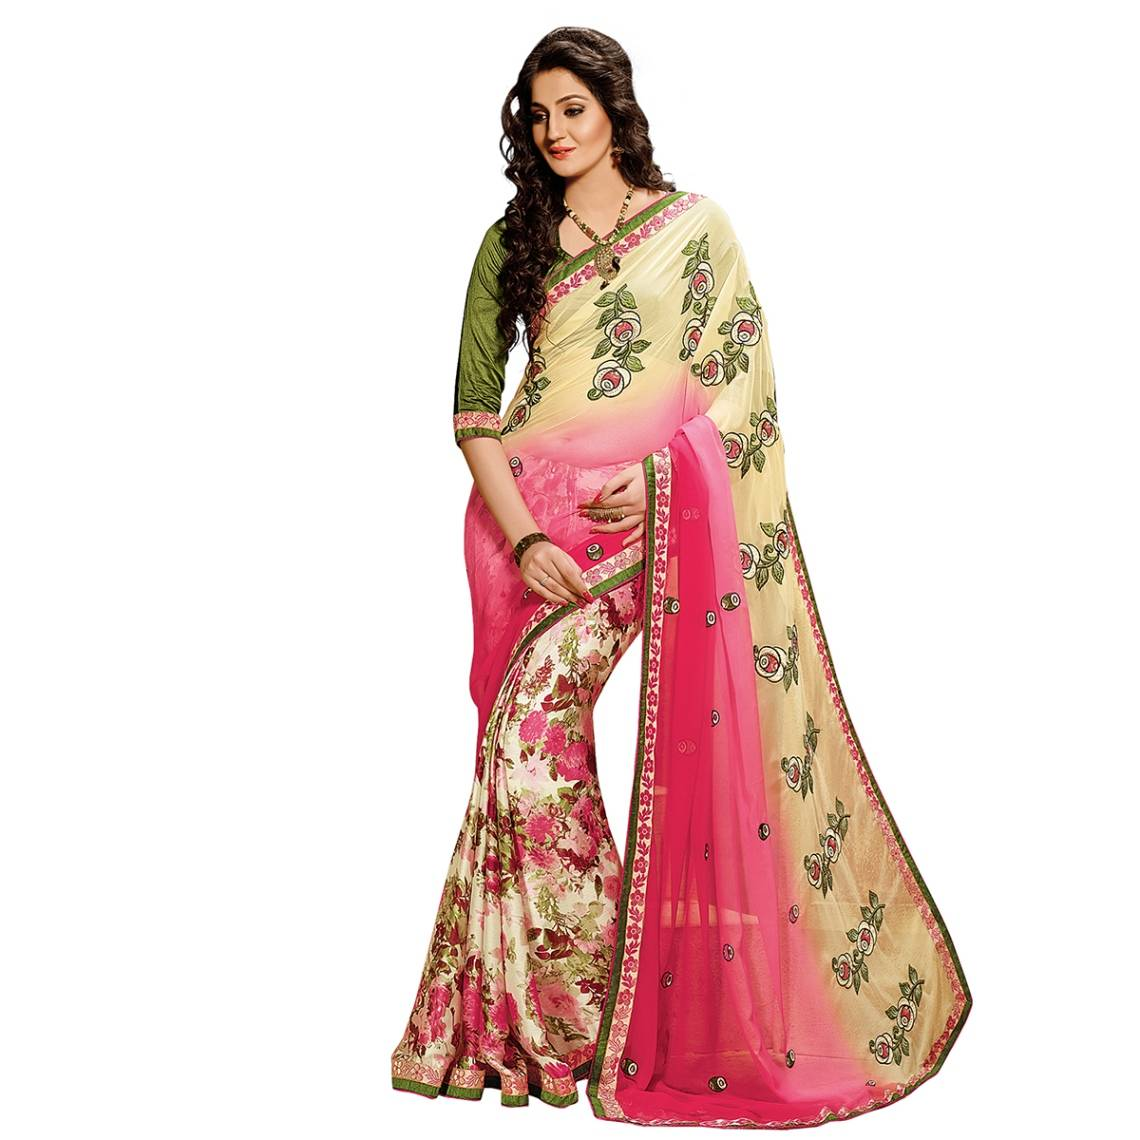 Shonaya Multicolour Georgette Embroidered Sarees With Blouse PieceSGDN2-4861